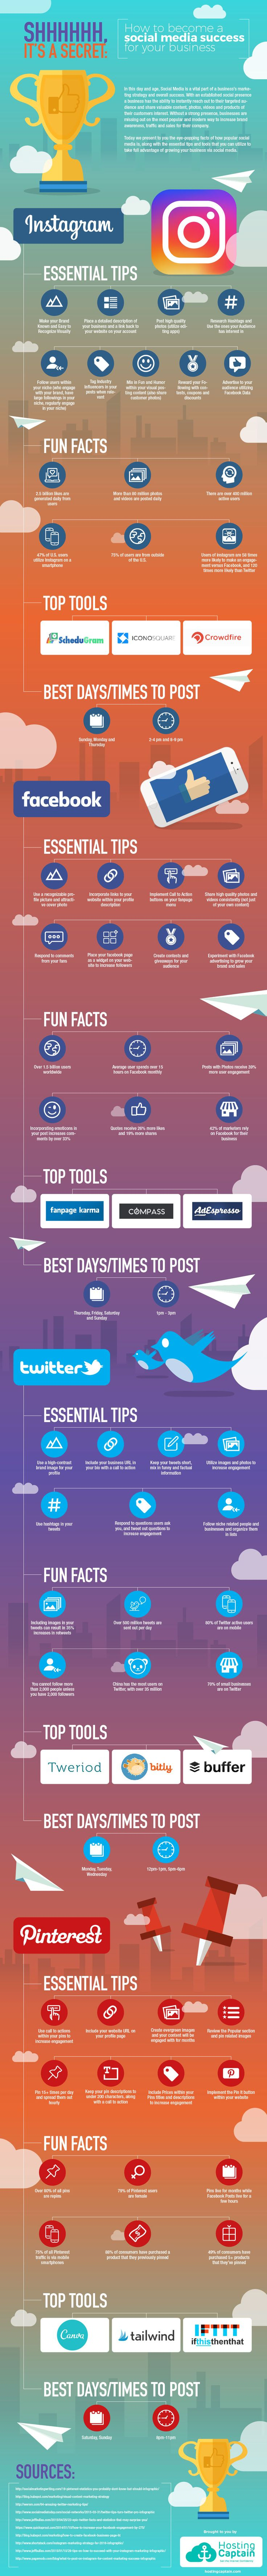 Social Media Tips & Tools #infographic Curated From 10 Articles By 8  Distinct Sources Like